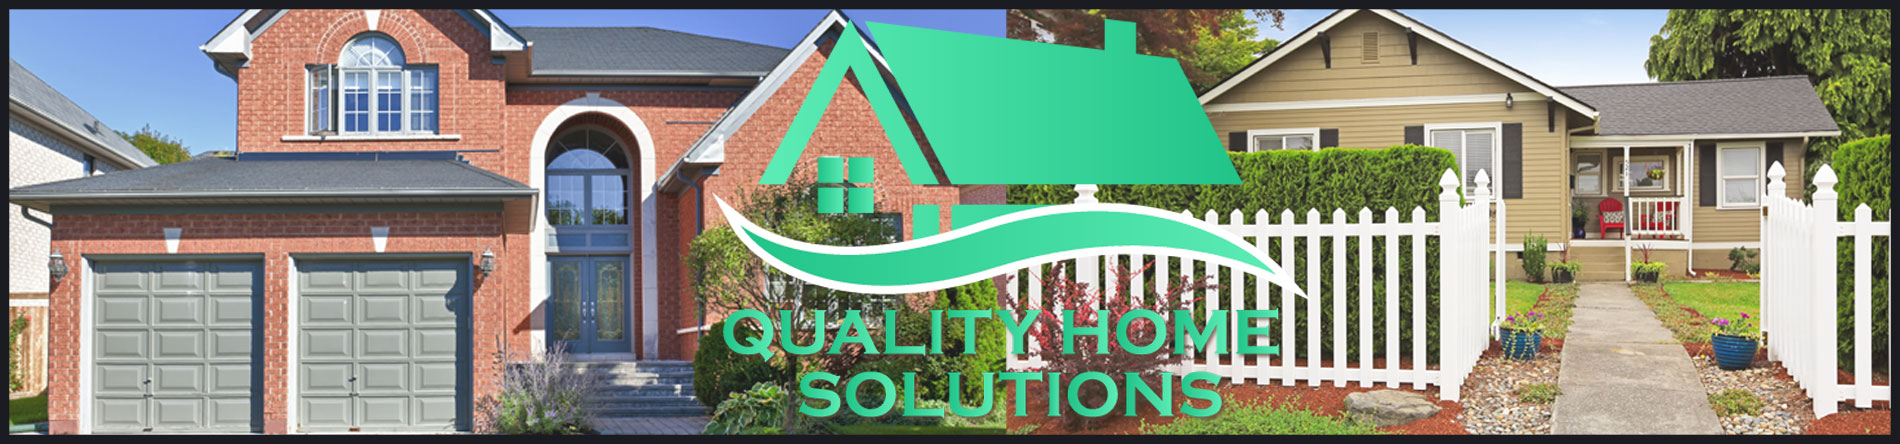 Quality Home Solutions is a Handyman Service in Haysville, KS